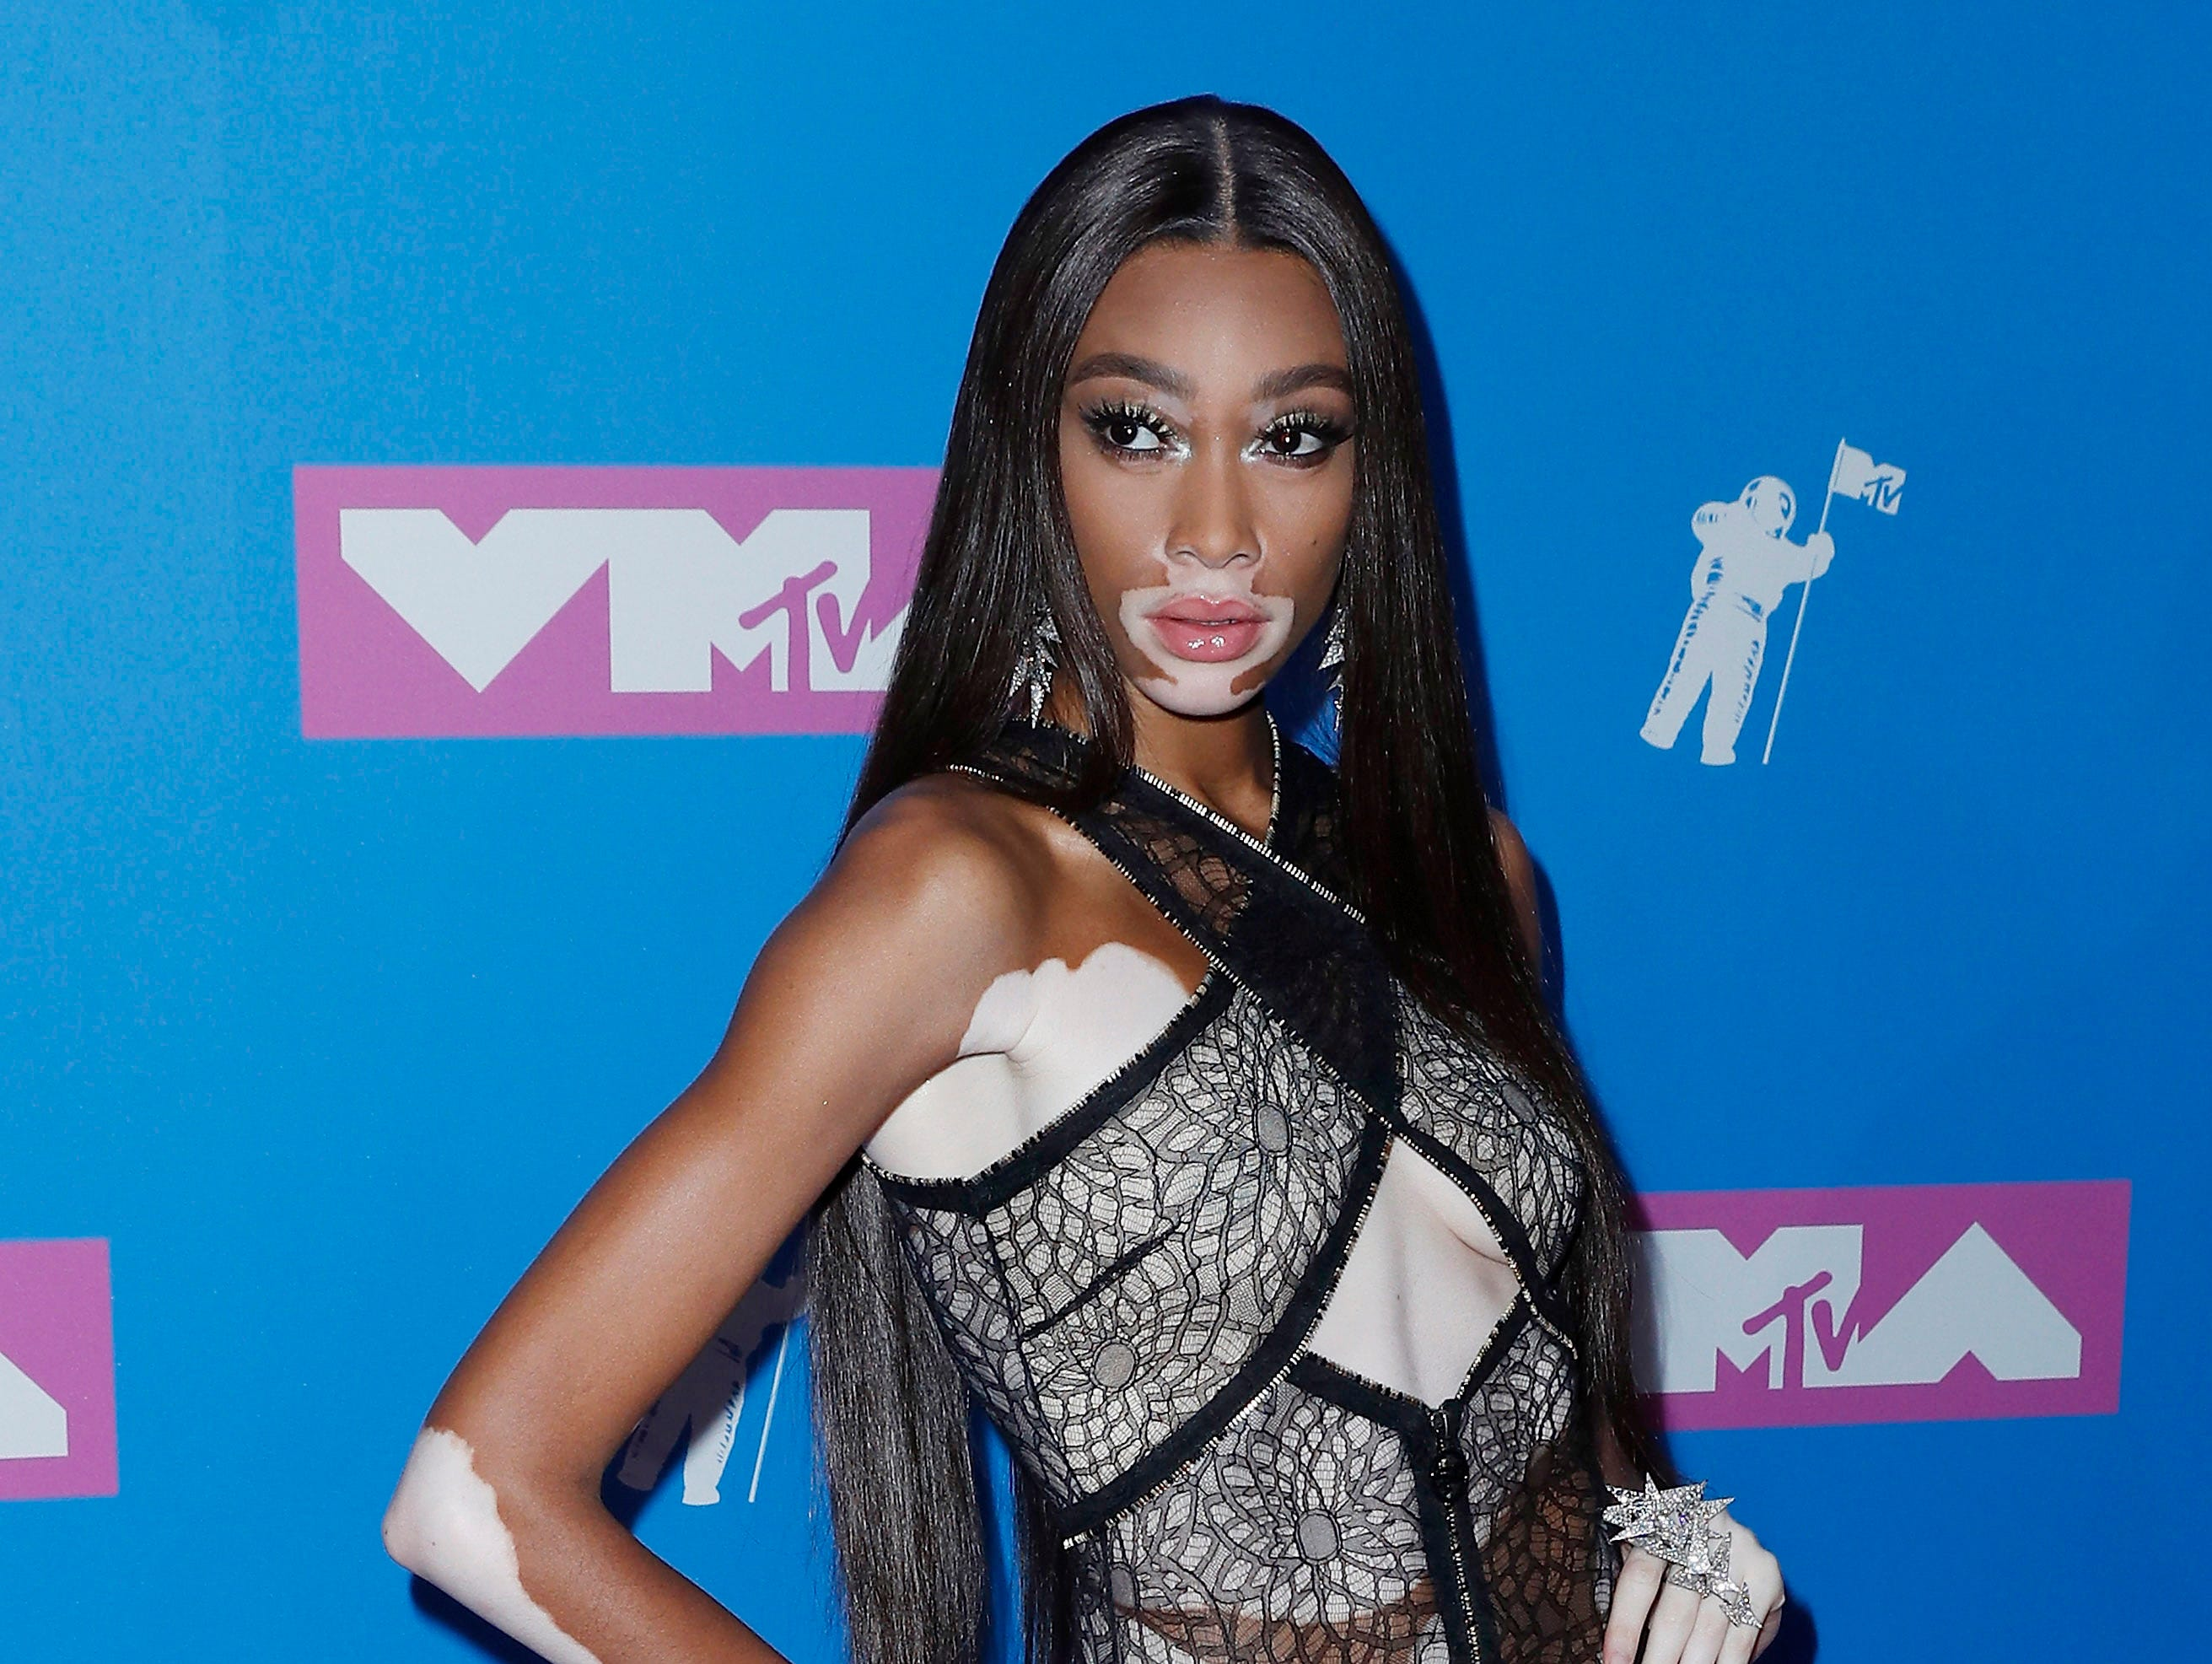 Model Winnie Harlow posed in a black lacey (and see-through) number at the MTV Video Music Awards.